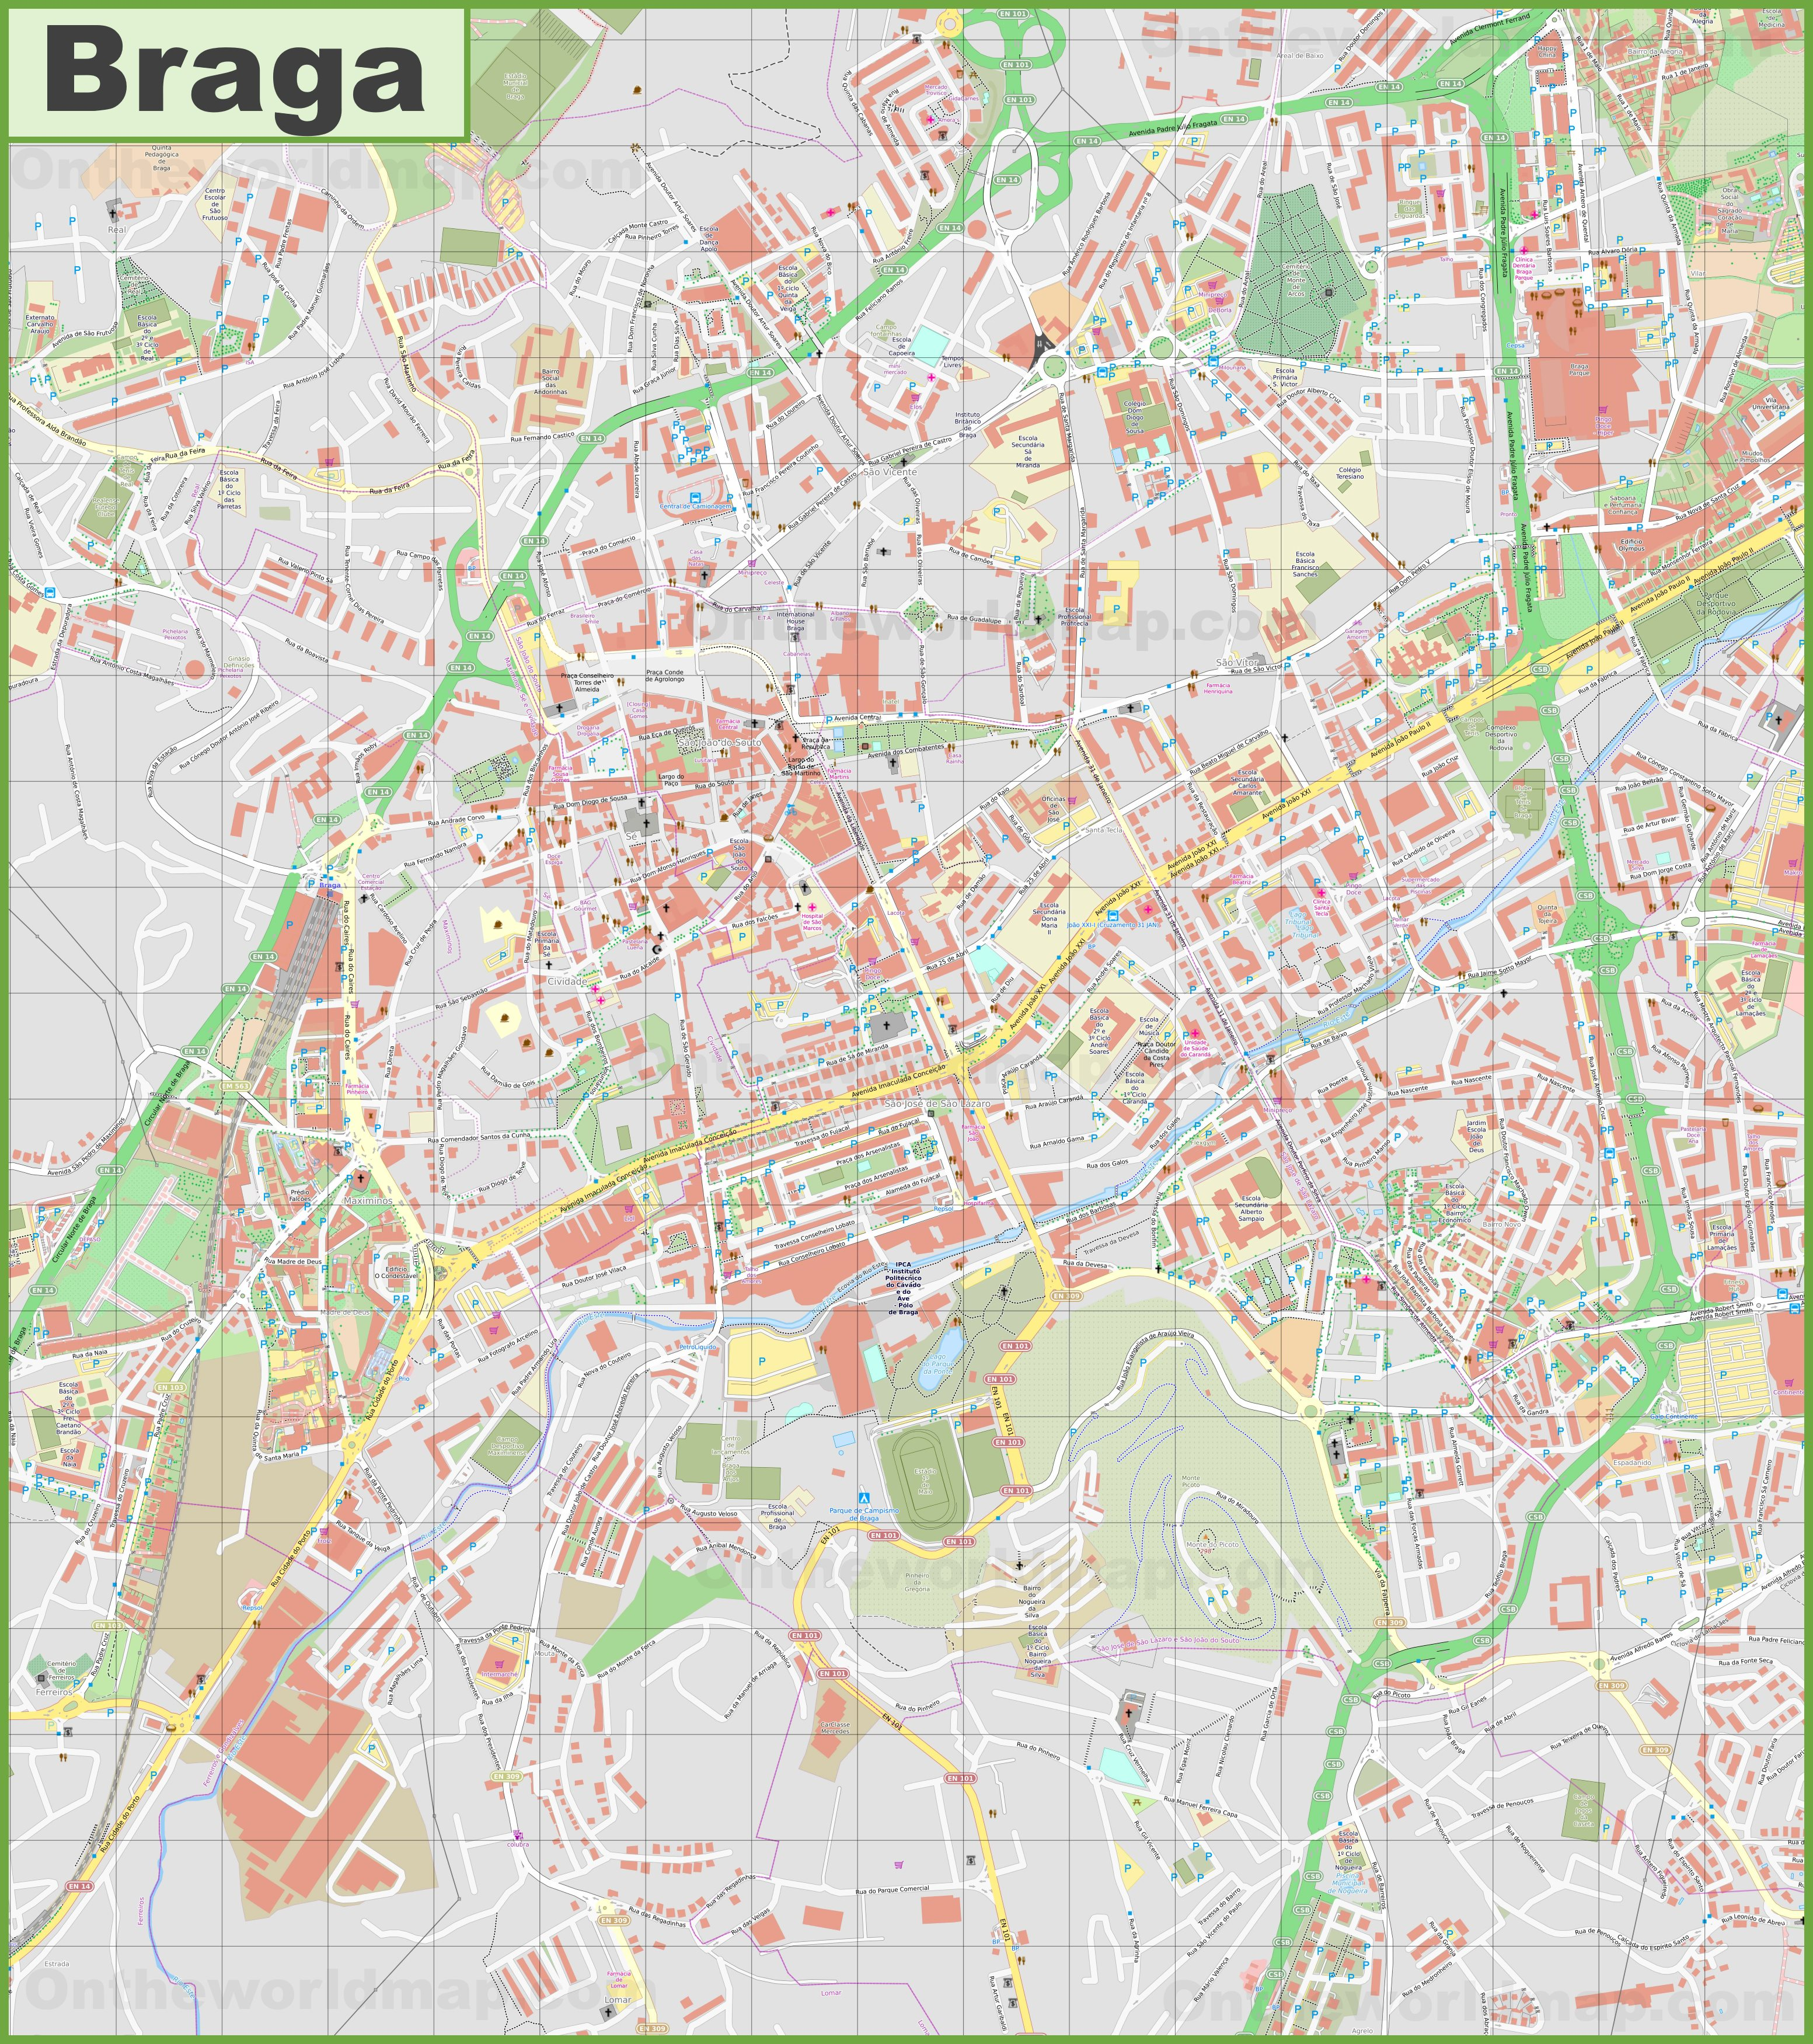 Detailed map of Braga